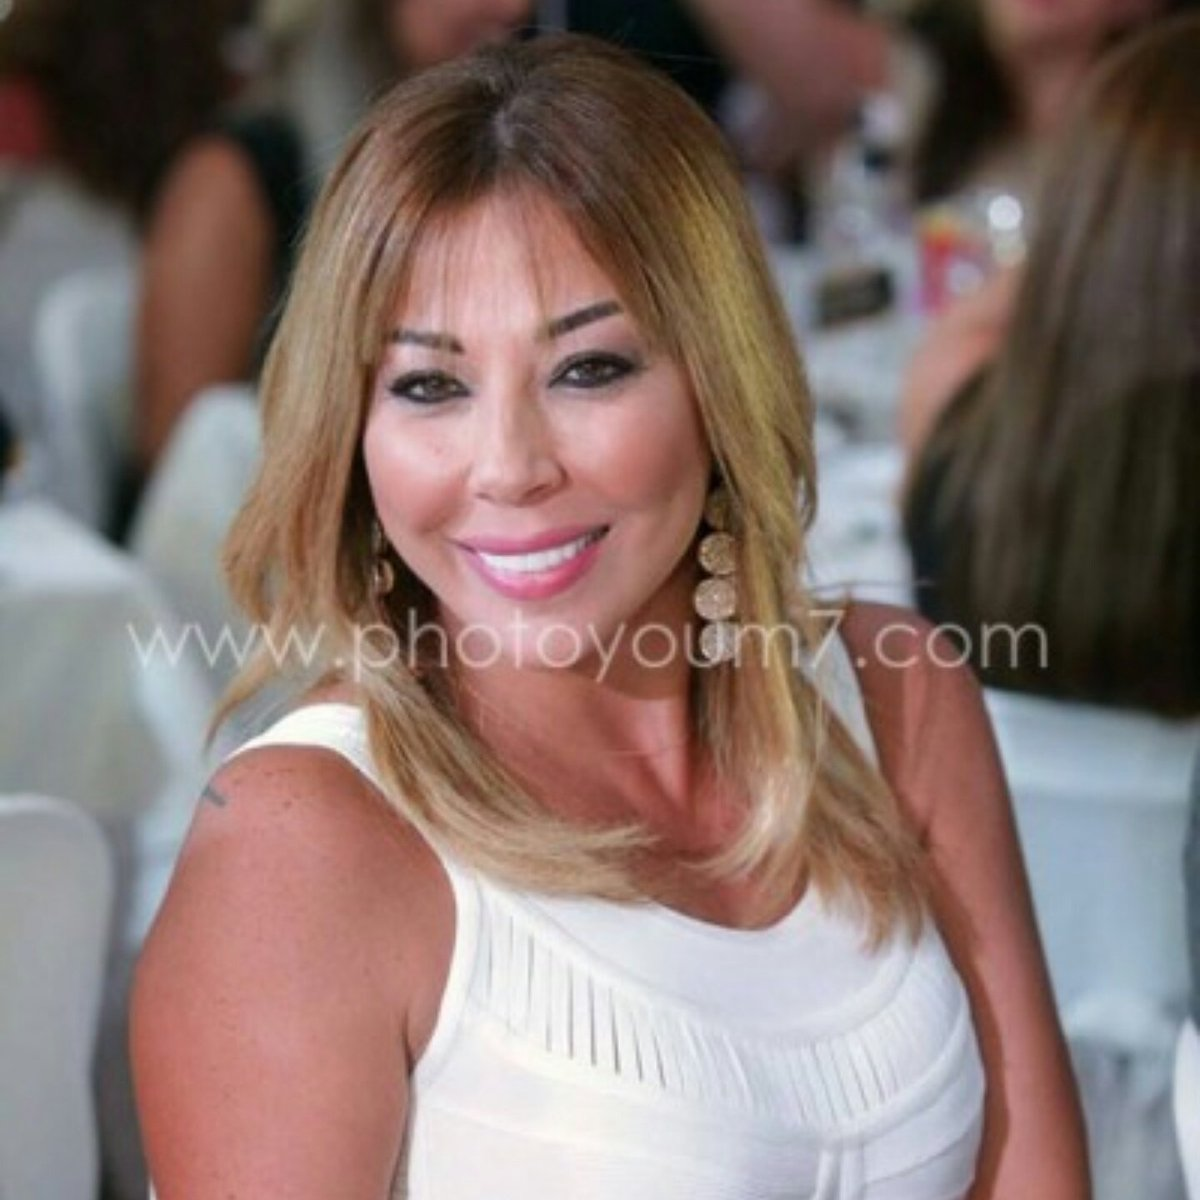 Roula Chamieh ғans On Twitter Moudelkoun W Alwankoun Fanzatii 7abibatii Roula Chamieh Roulachamieh Roulachamieh